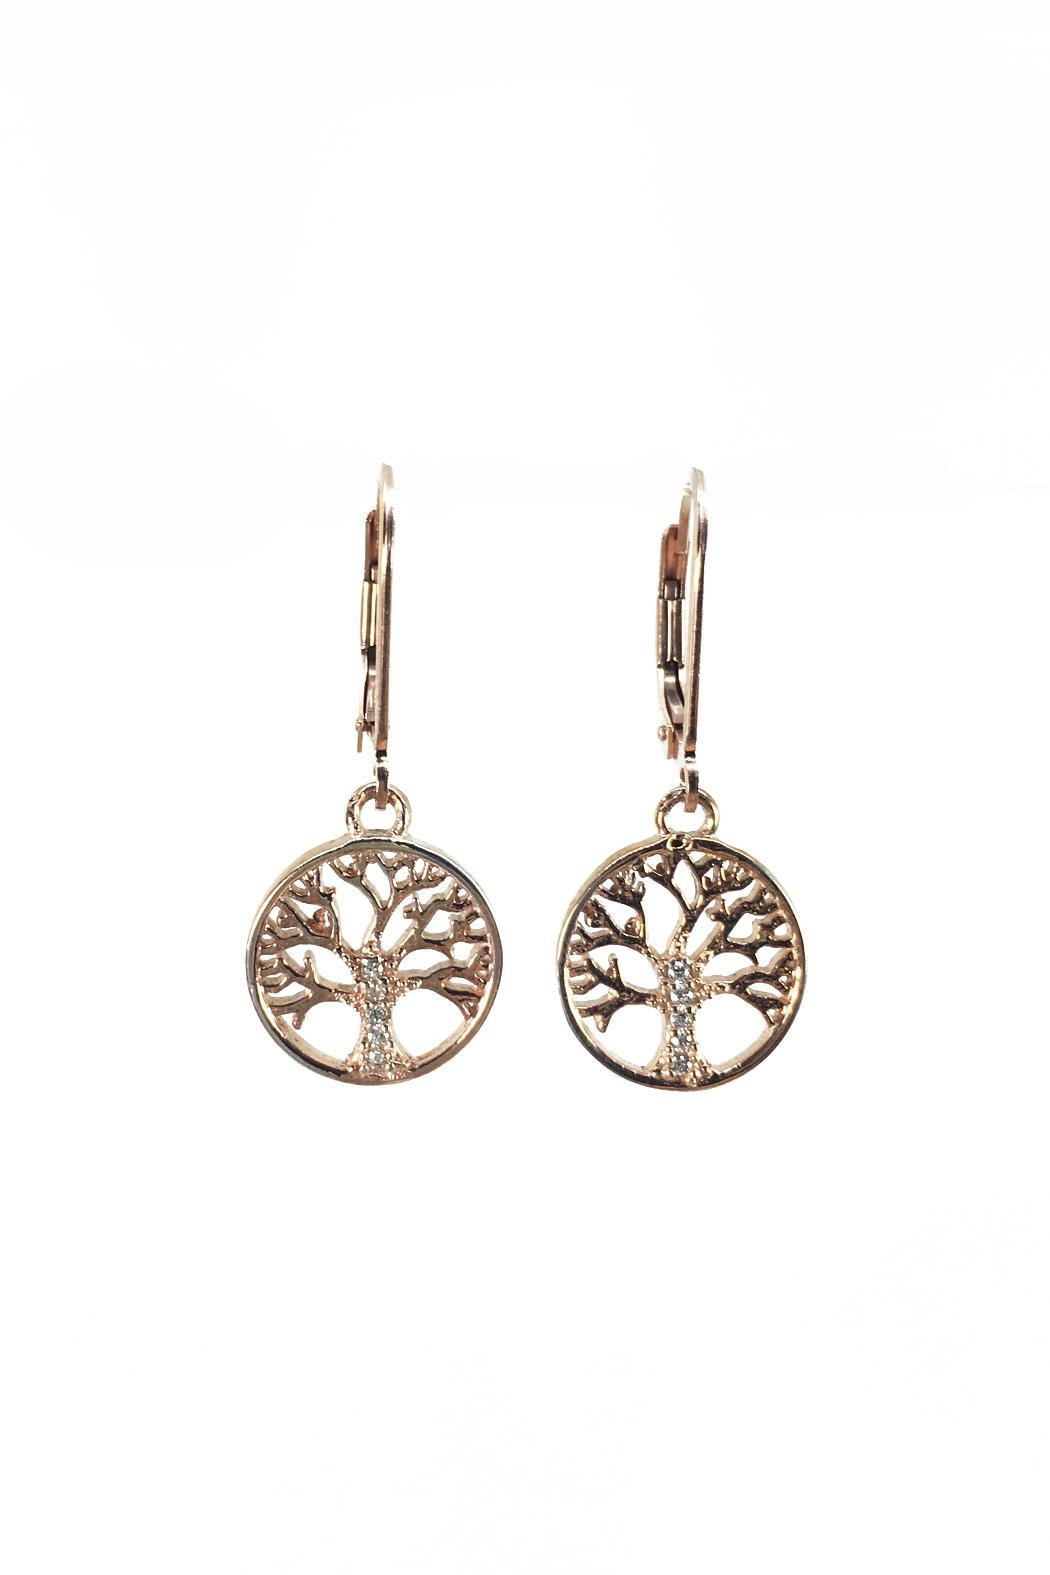 Melinda Lawton Jewelry Tree Of Life Earrings - Main Image